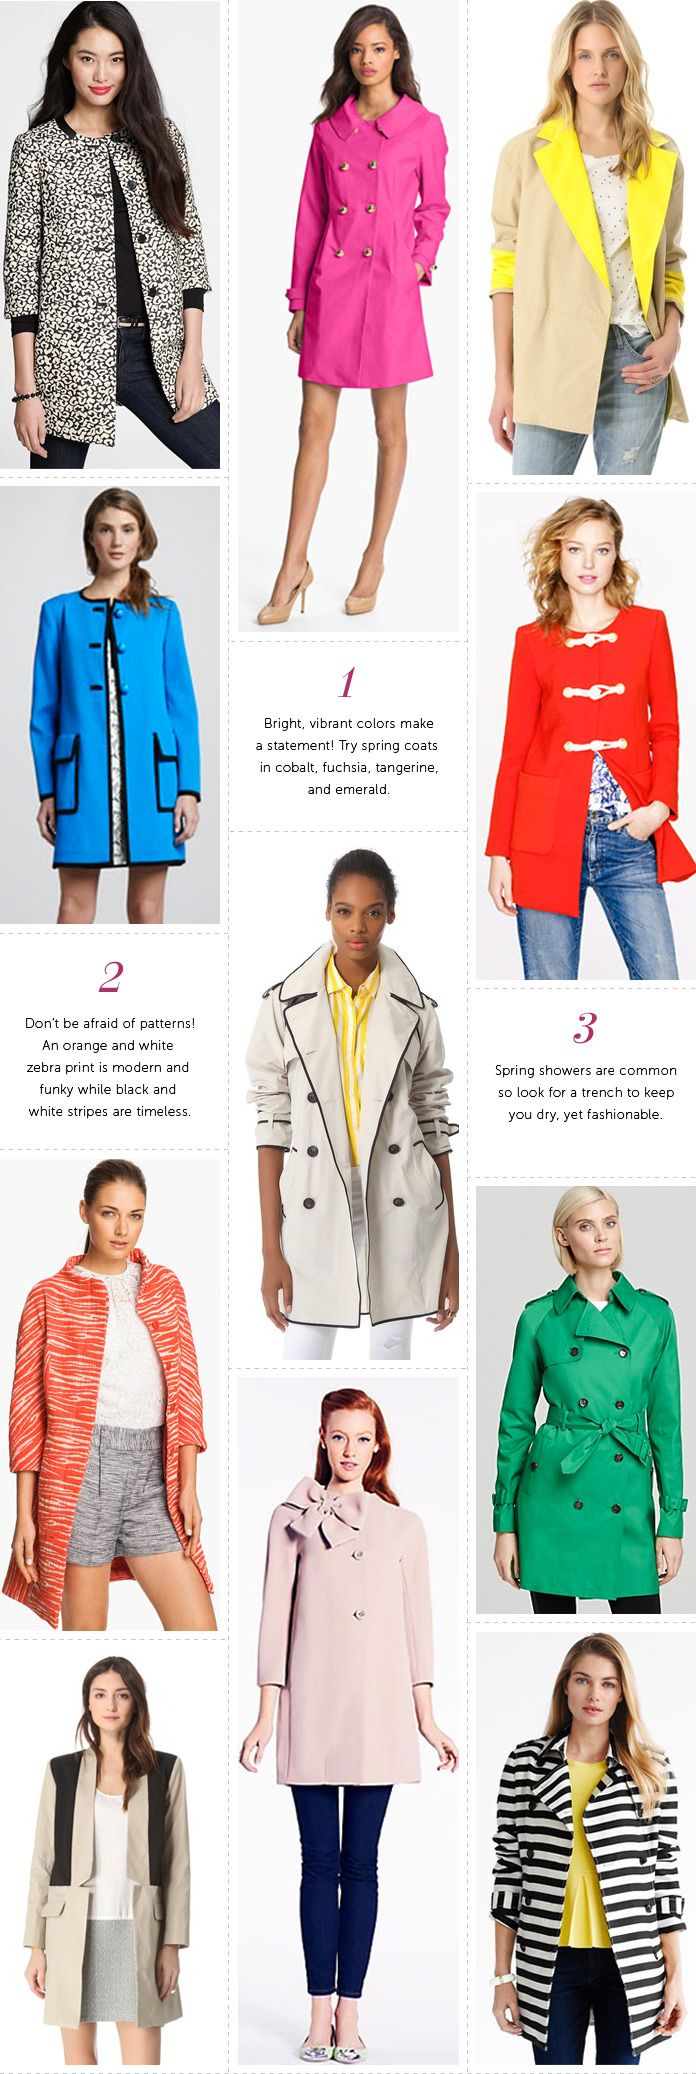 Professionelle: Our Favorite Spring Coats